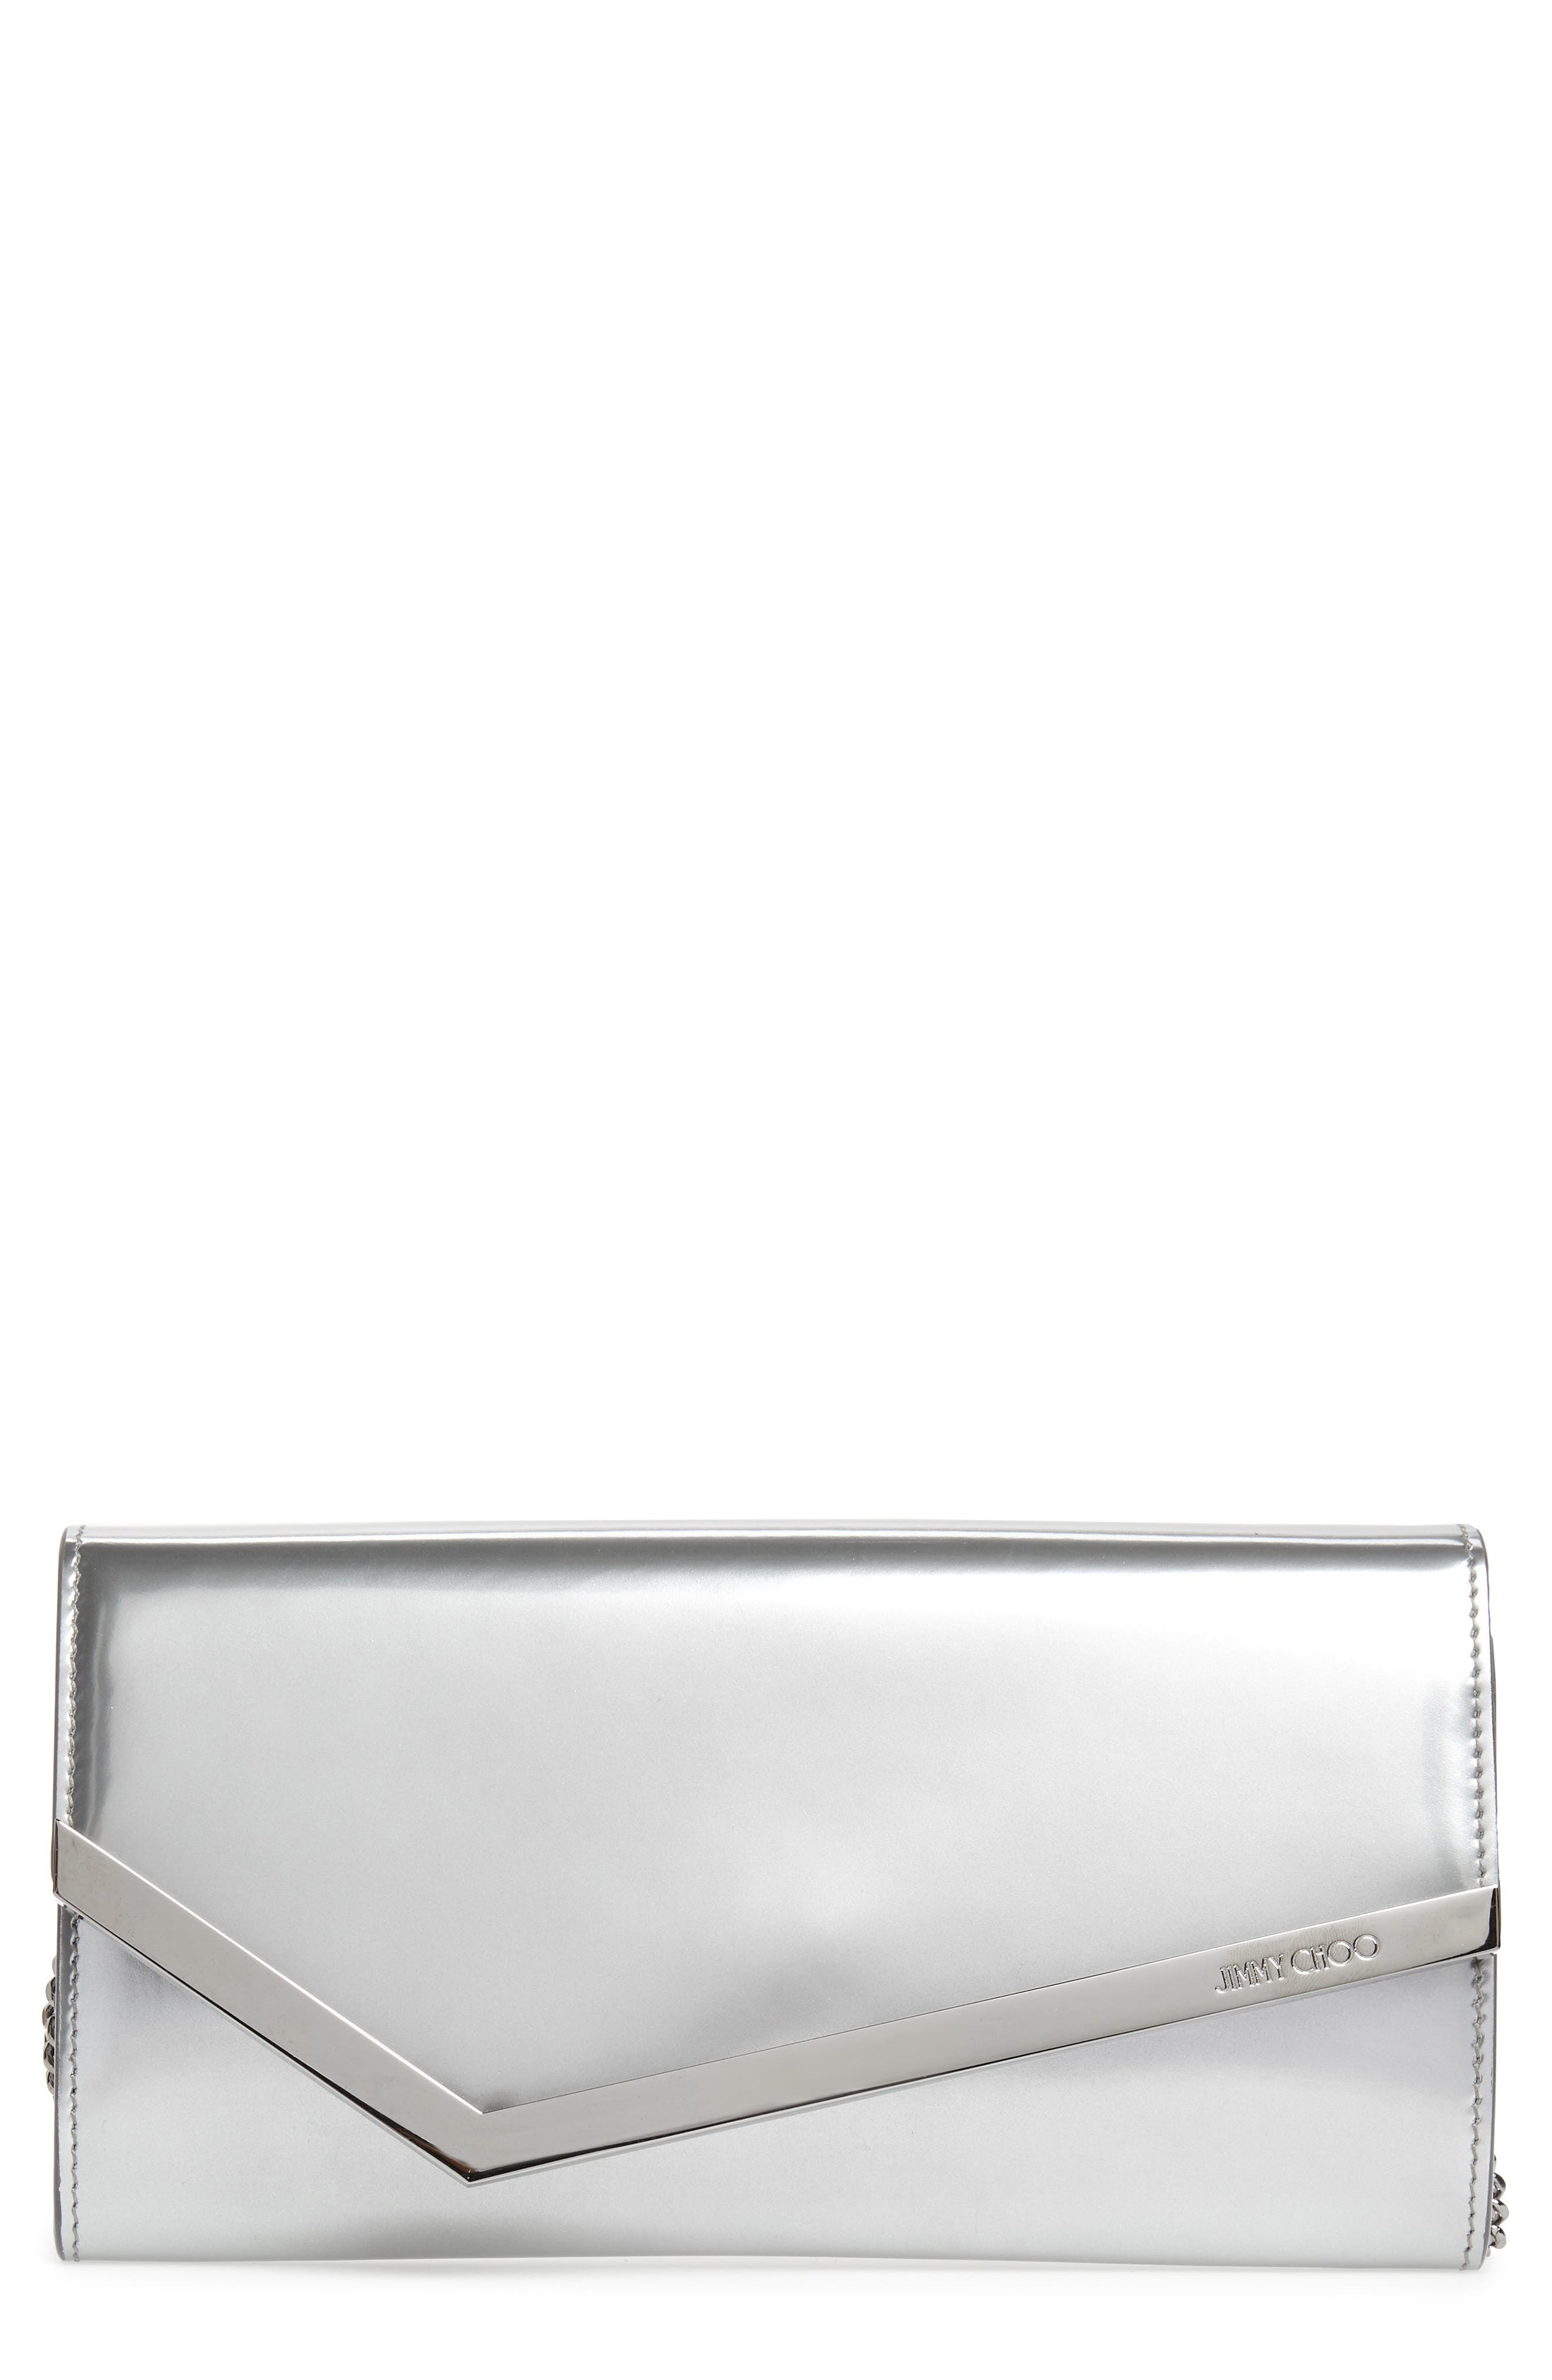 JIMMY CHOO Emmie Metallic Leather Clutch, Main, color, SILVER